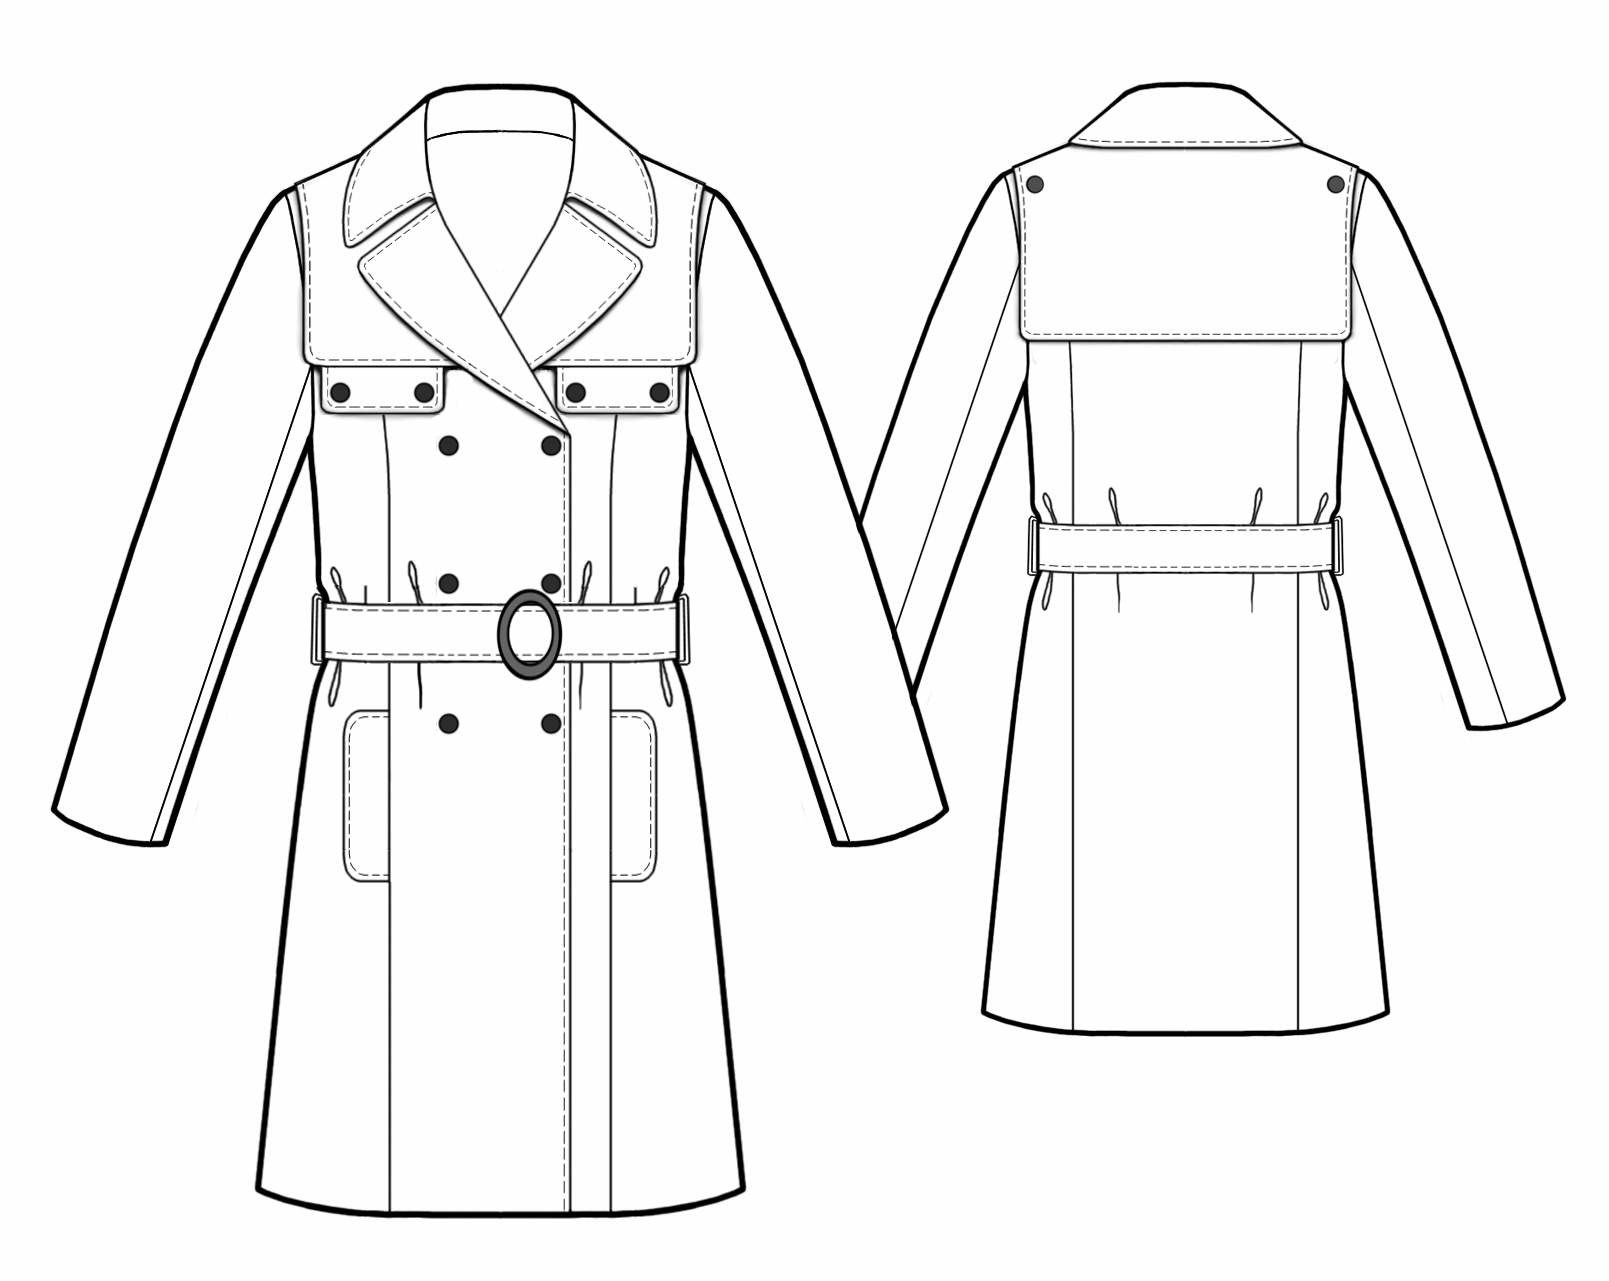 Trench coat sewing pattern 5488 made to measure sewing pattern trench coat sewing pattern 5488 jeuxipadfo Gallery